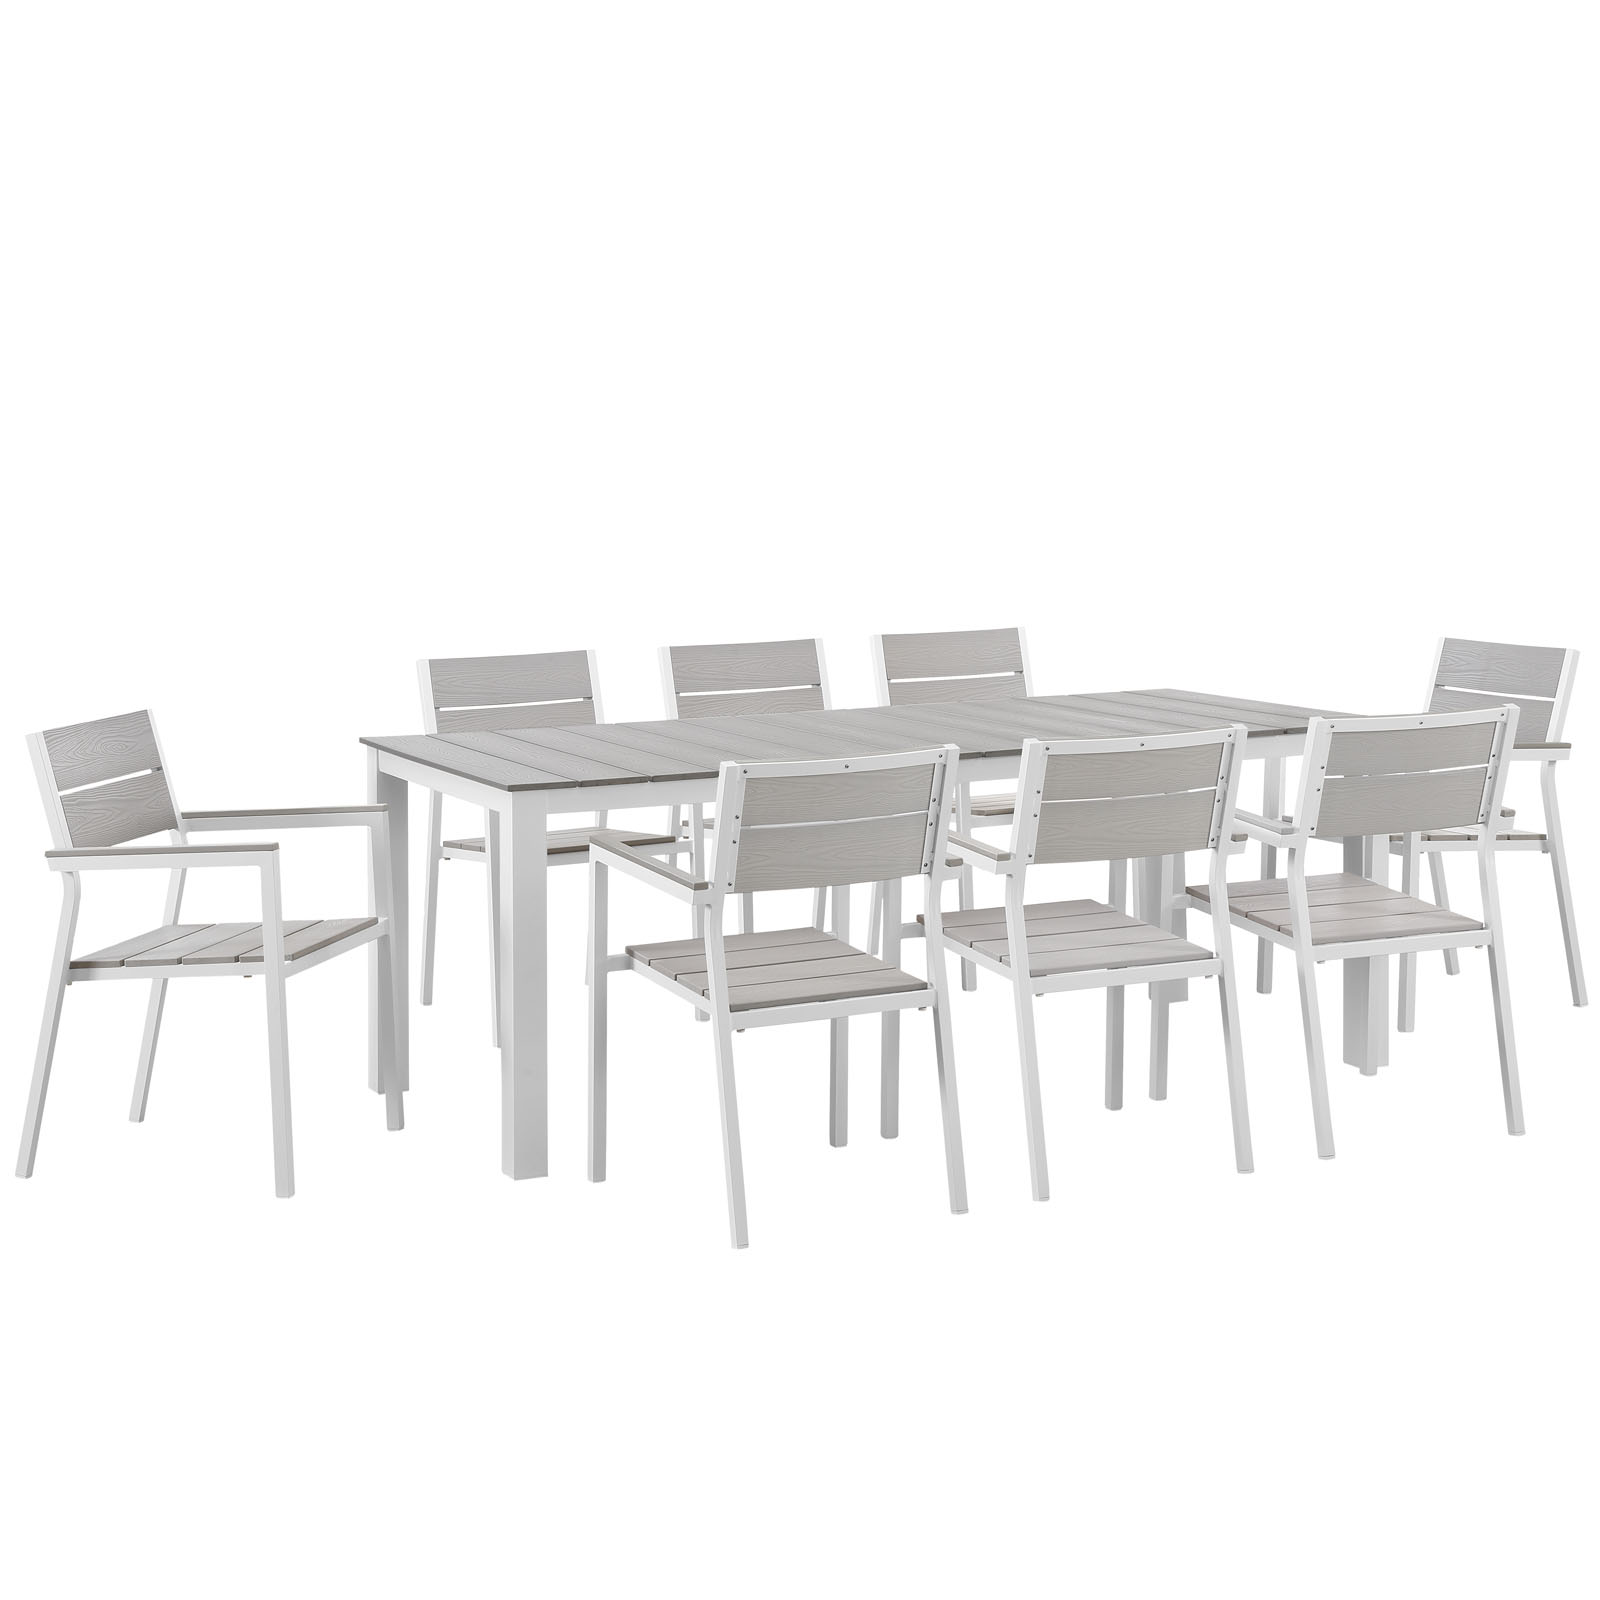 Modern Urban Contemporary 9 pcs Outdoor Patio Dining Room Set, White Light Grey Steel by America Luxury